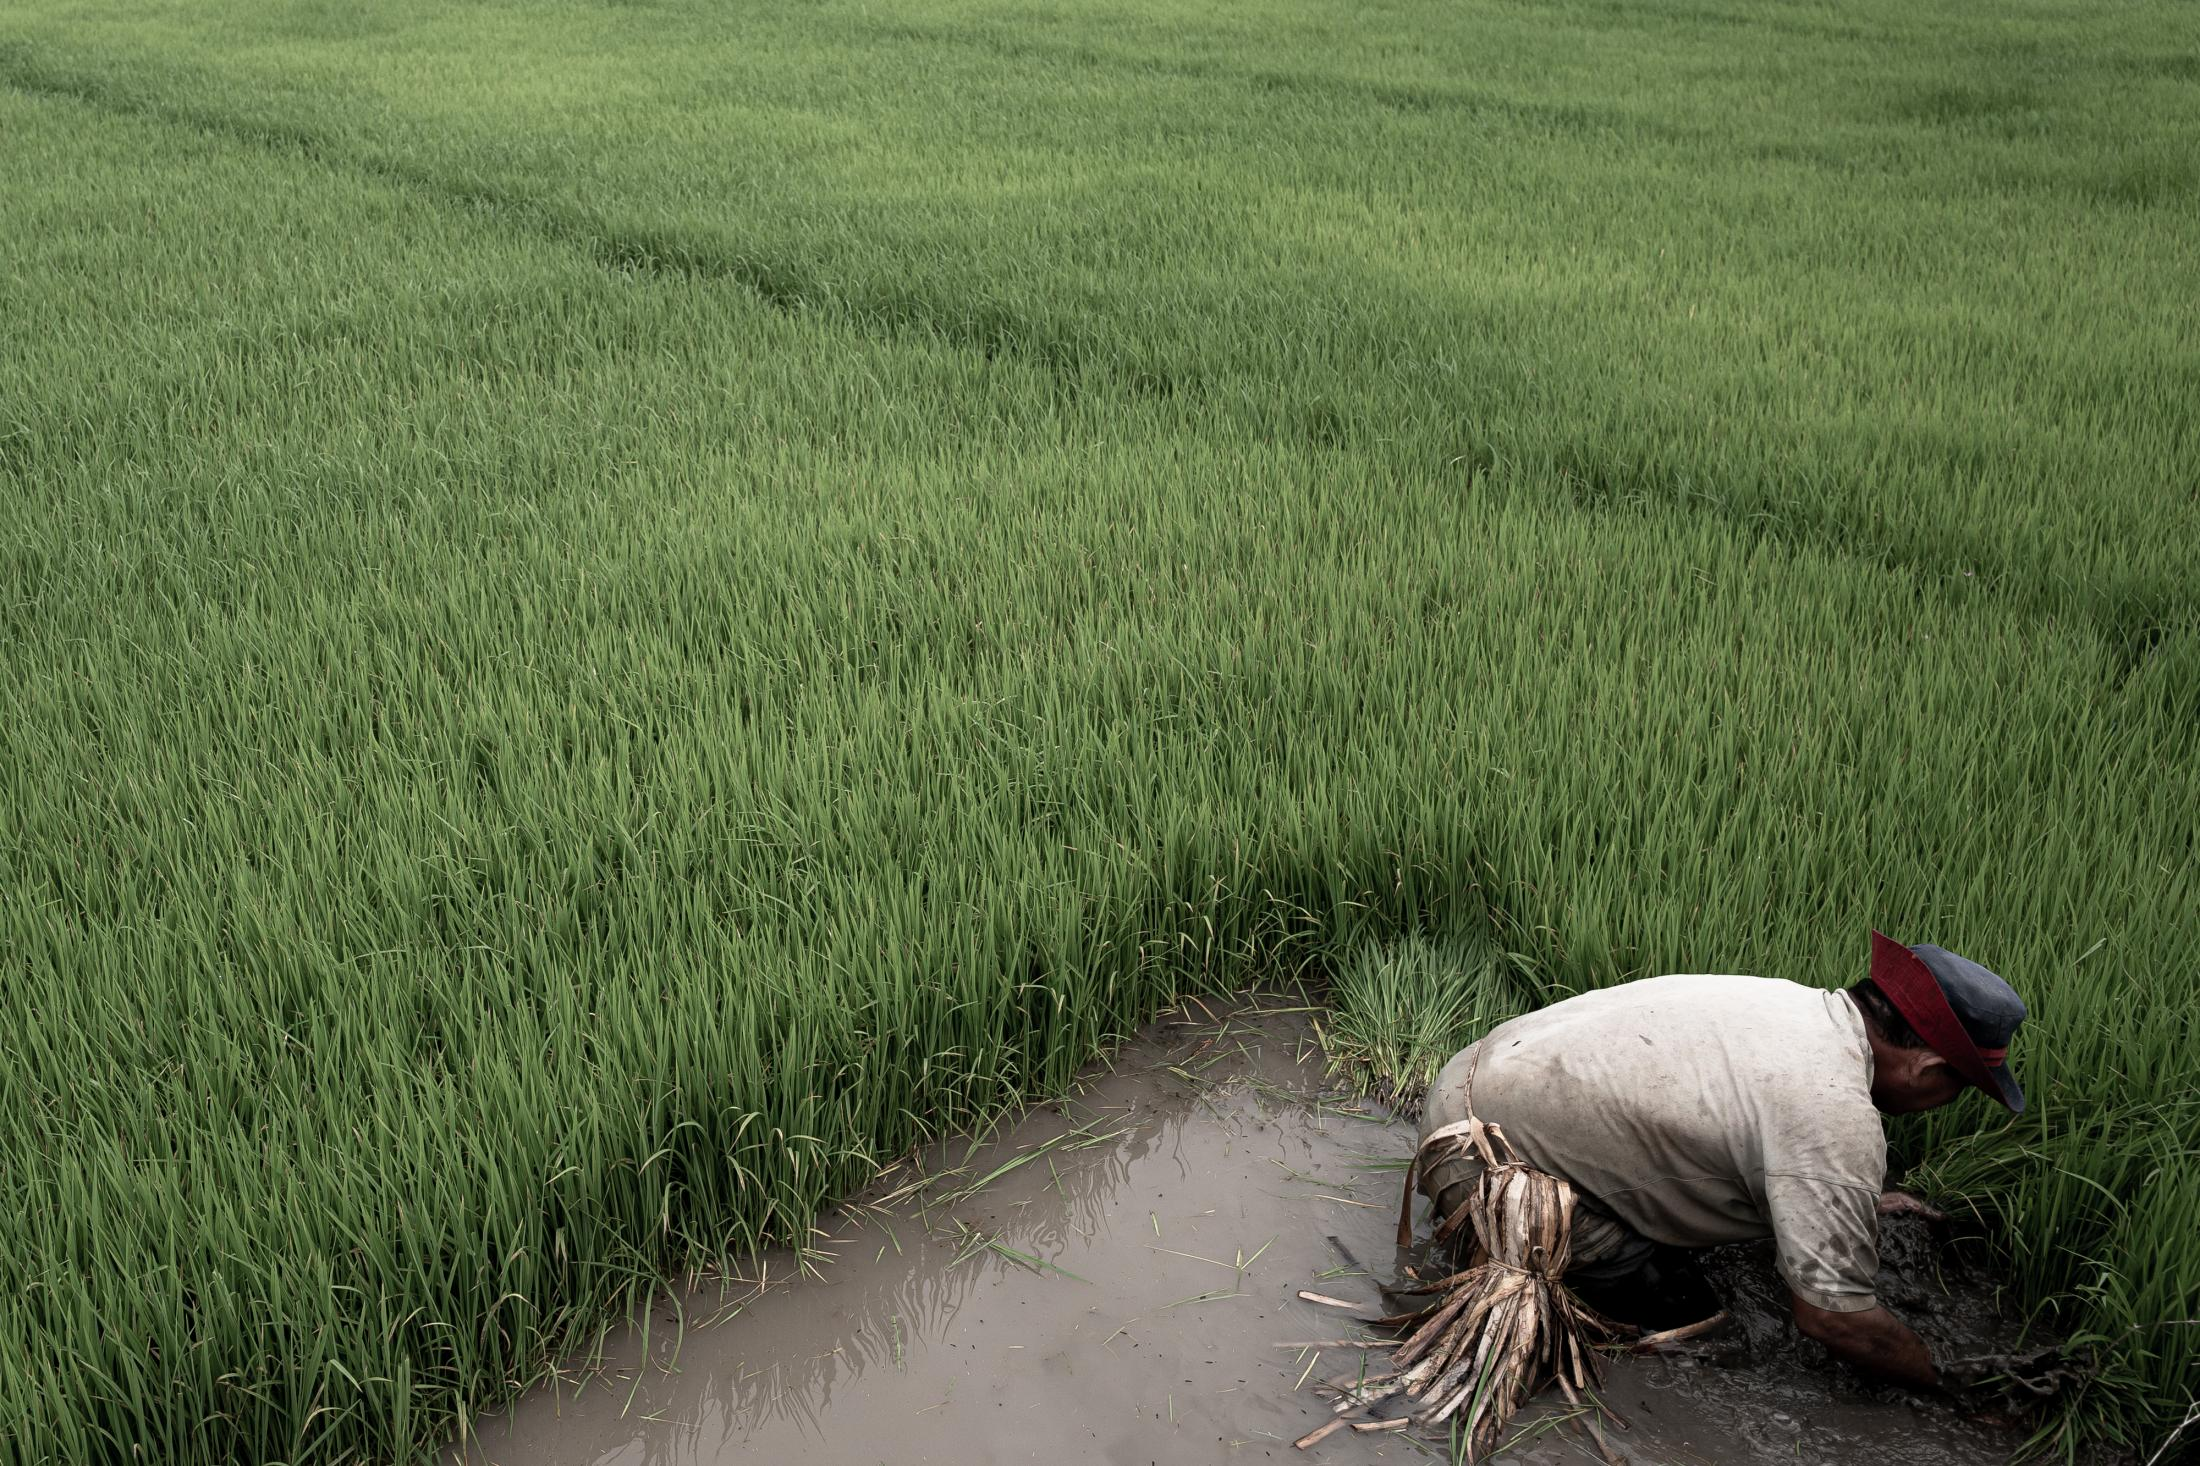 In Bagua, Amazonas, Peru - outside Wampís territory - a farmer harvests rice. Rice monoculture is very harmful to the environment, and its cultivation is a major emitter of CO2 and fuels the risk of climate change. The Wampis forbid monoculture in their territory. In order to live off the riches of the forest, in addition to hunting, each member of the community can grow up to five hectares in a free place of his choice throughout the territory. On a quick note, if all Wampis decided to grow bananas, cocoa or cassava, their main products, that would represent less than 6% of the territory.